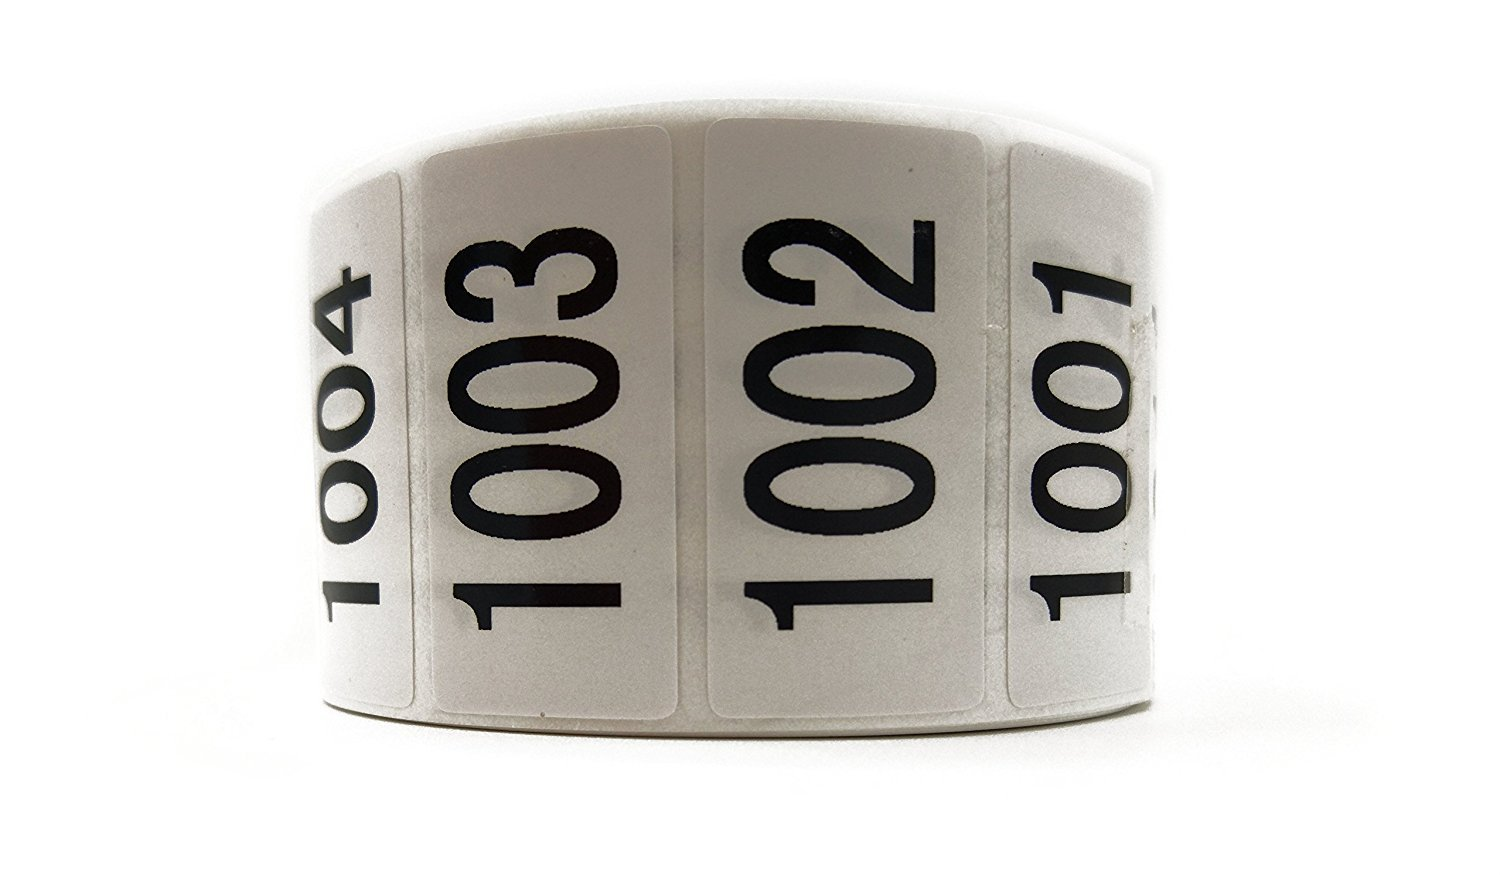 """Enzo Consecutively Numbered Sticker Labels 1.5 x 0.75"""" Water Proof Oil Resistance from Serial Number 1001 to 2000 1.7"""" Core Roll"""